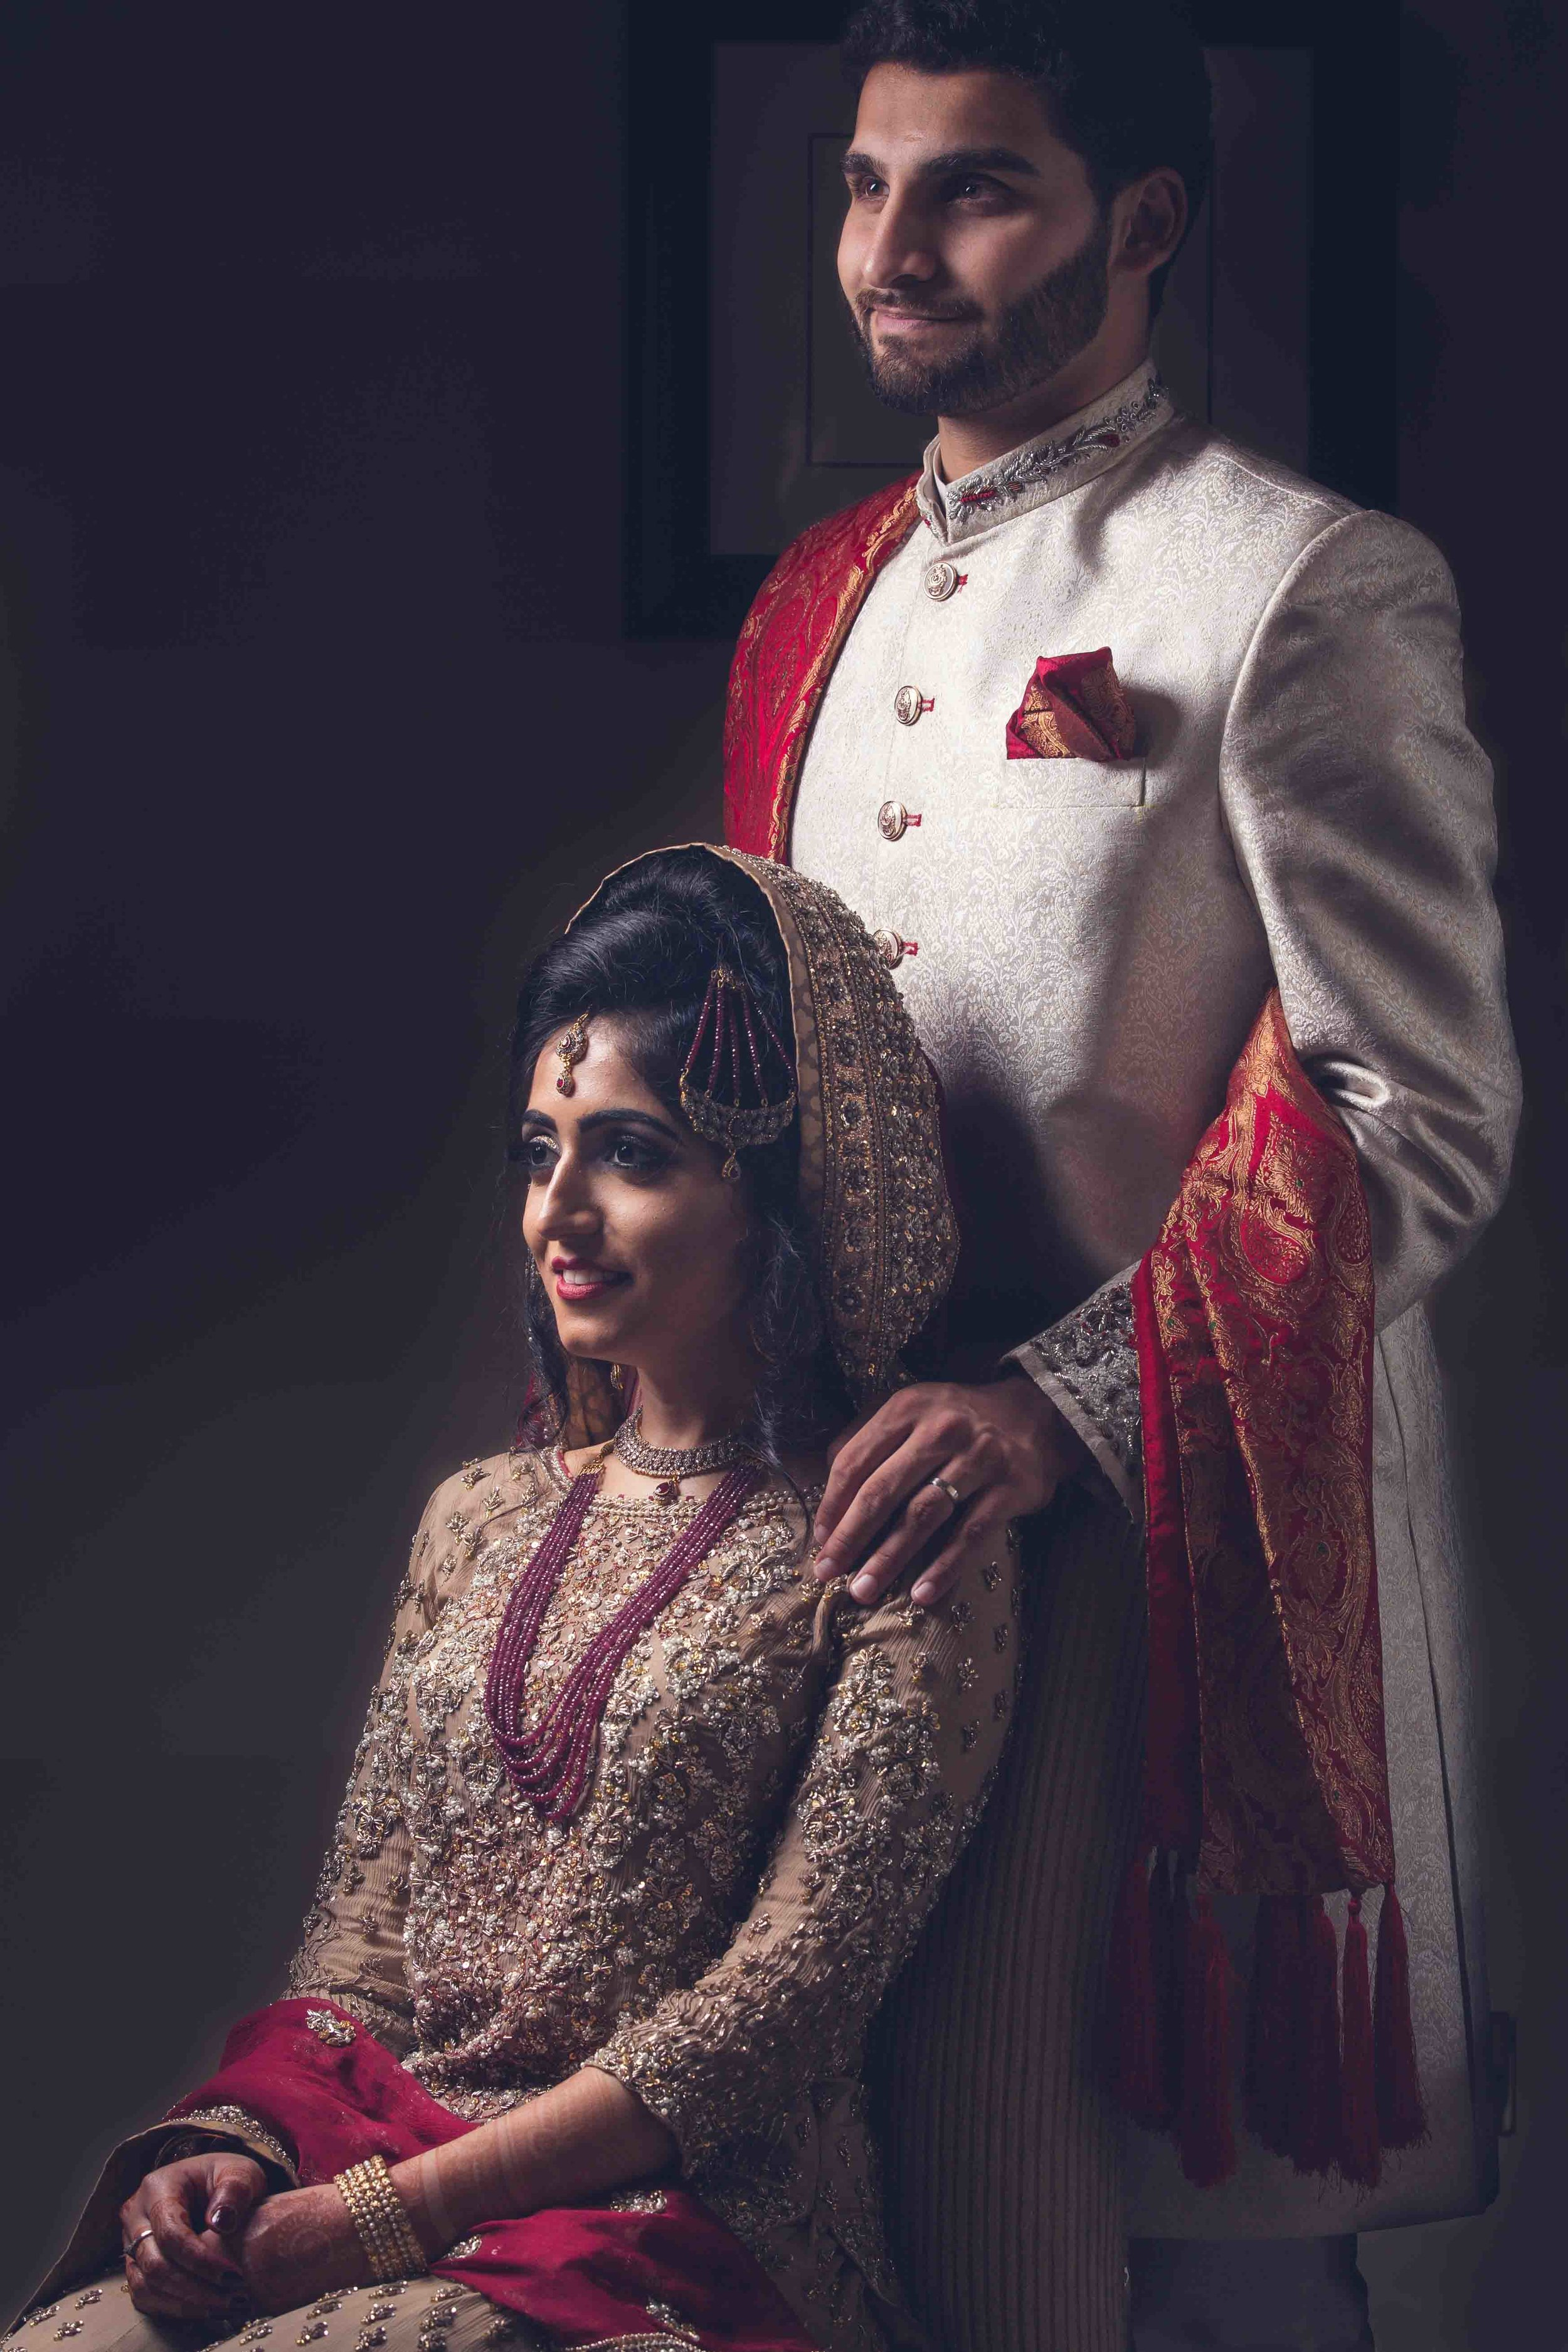 Opu Sultan Photography Asian wedding photography scotland edinburgh glasgow manchester birmingham london-257.jpg